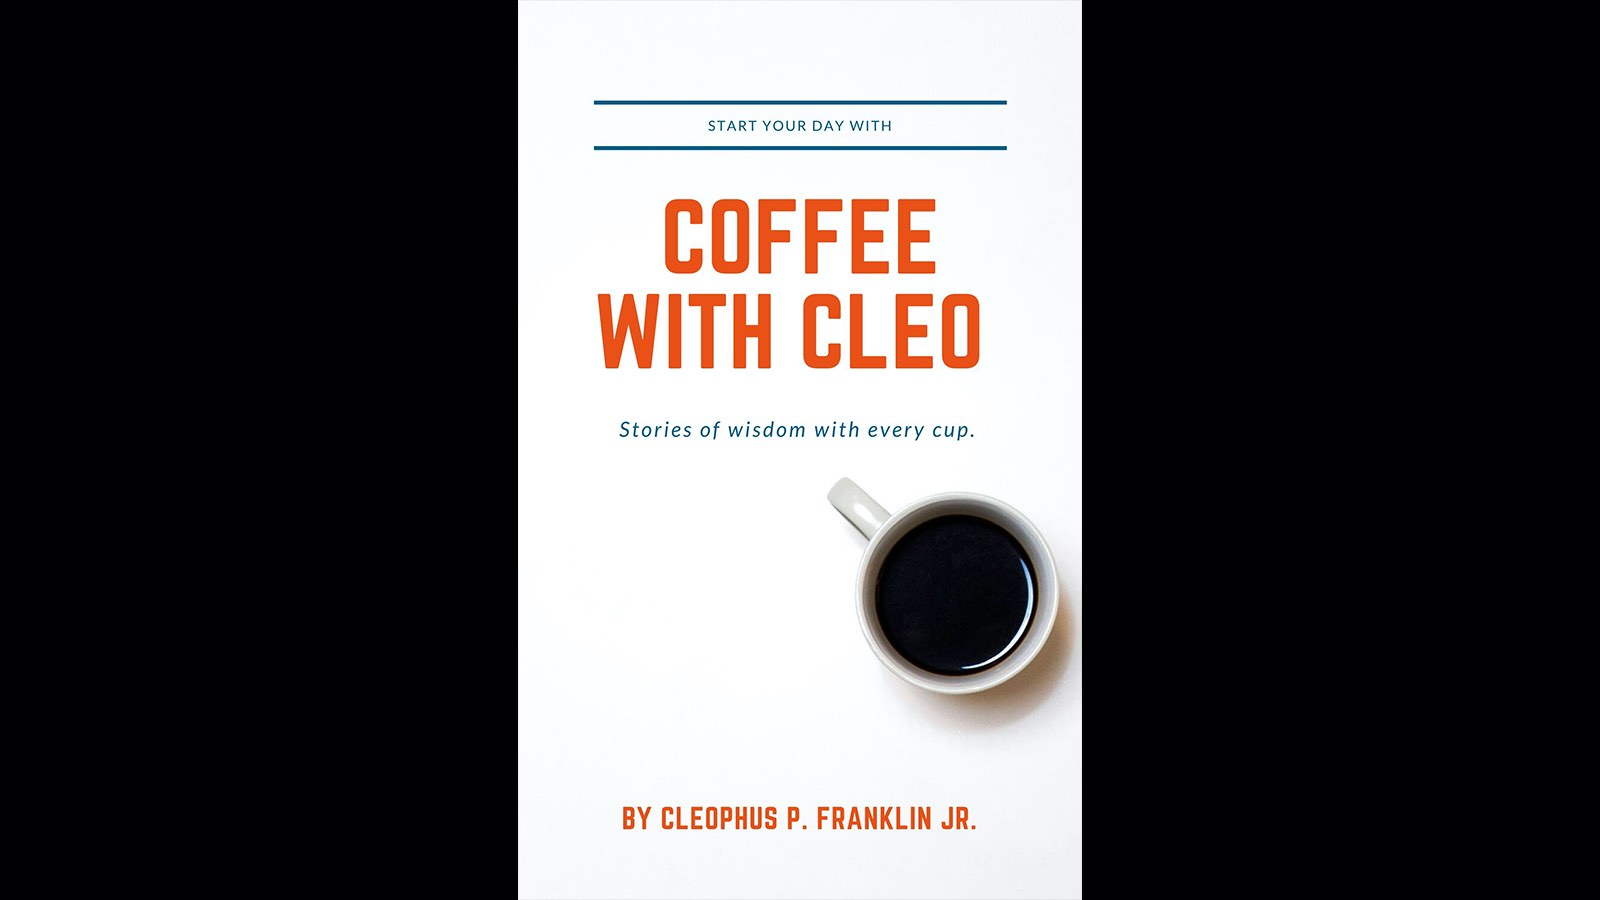 Cover of the Coffee with Cleo